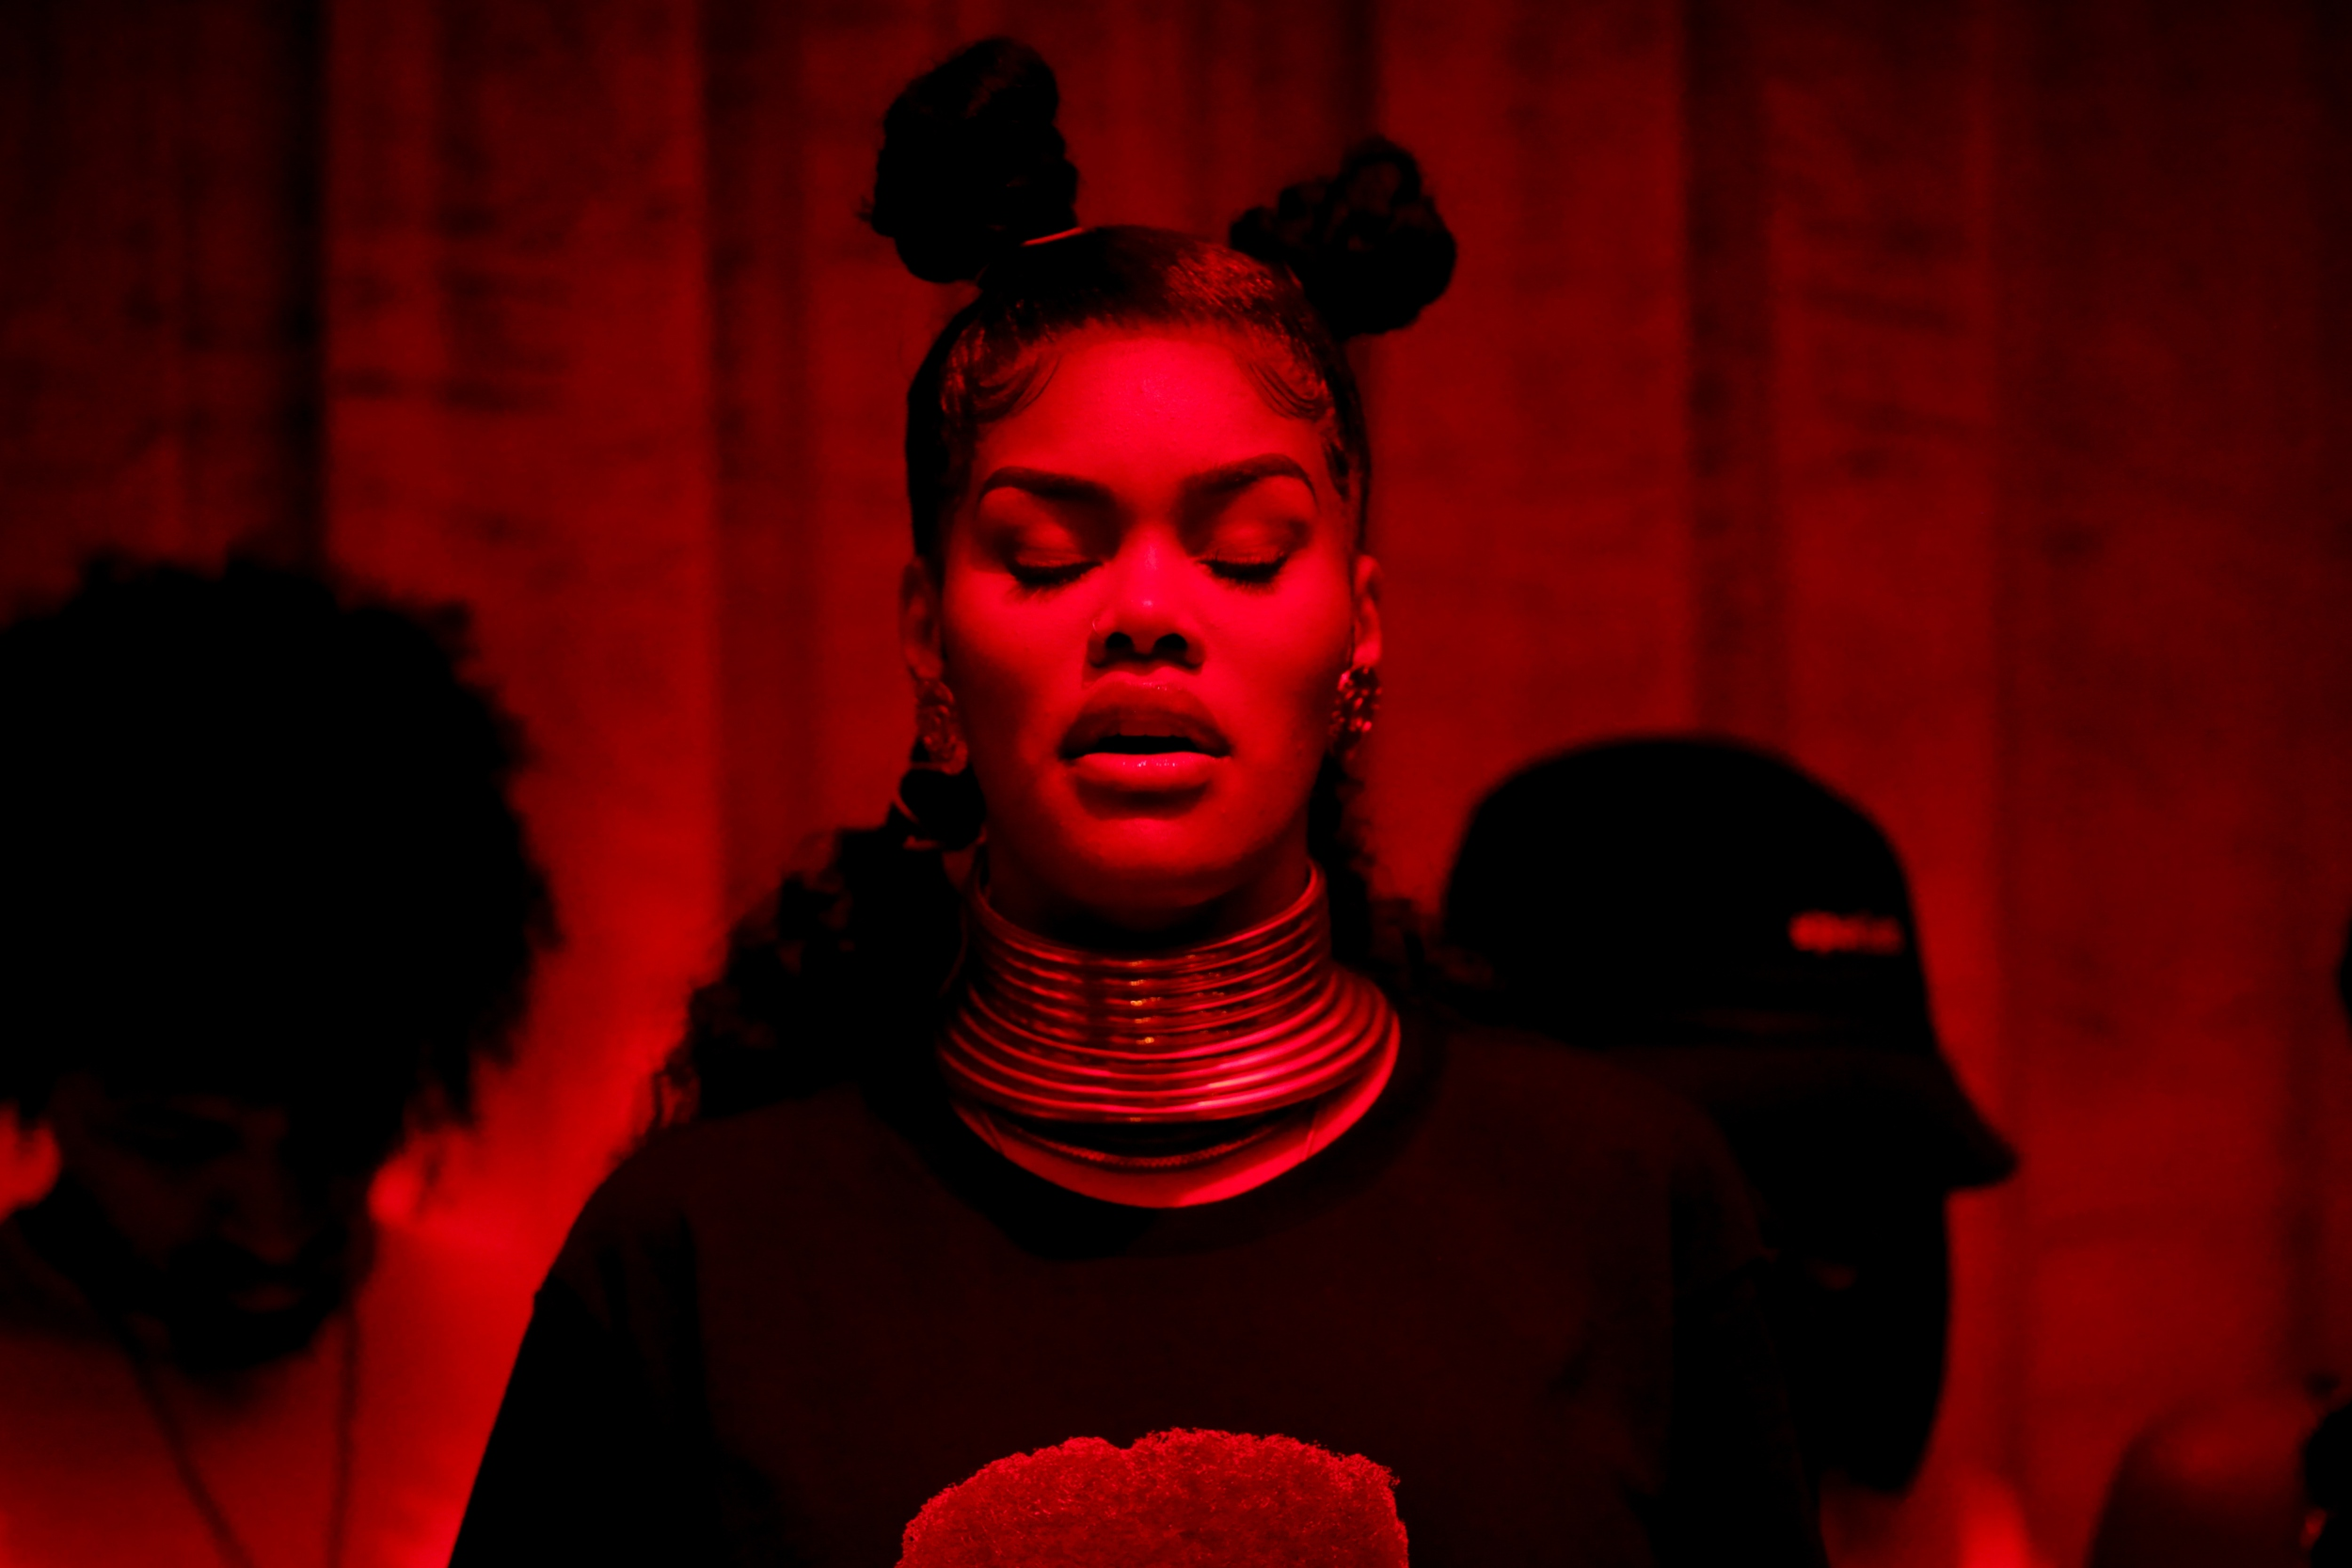 Teyana Taylor, a black woman, wears her hair in two buns and a large gold necklace. She is covered in a red light.